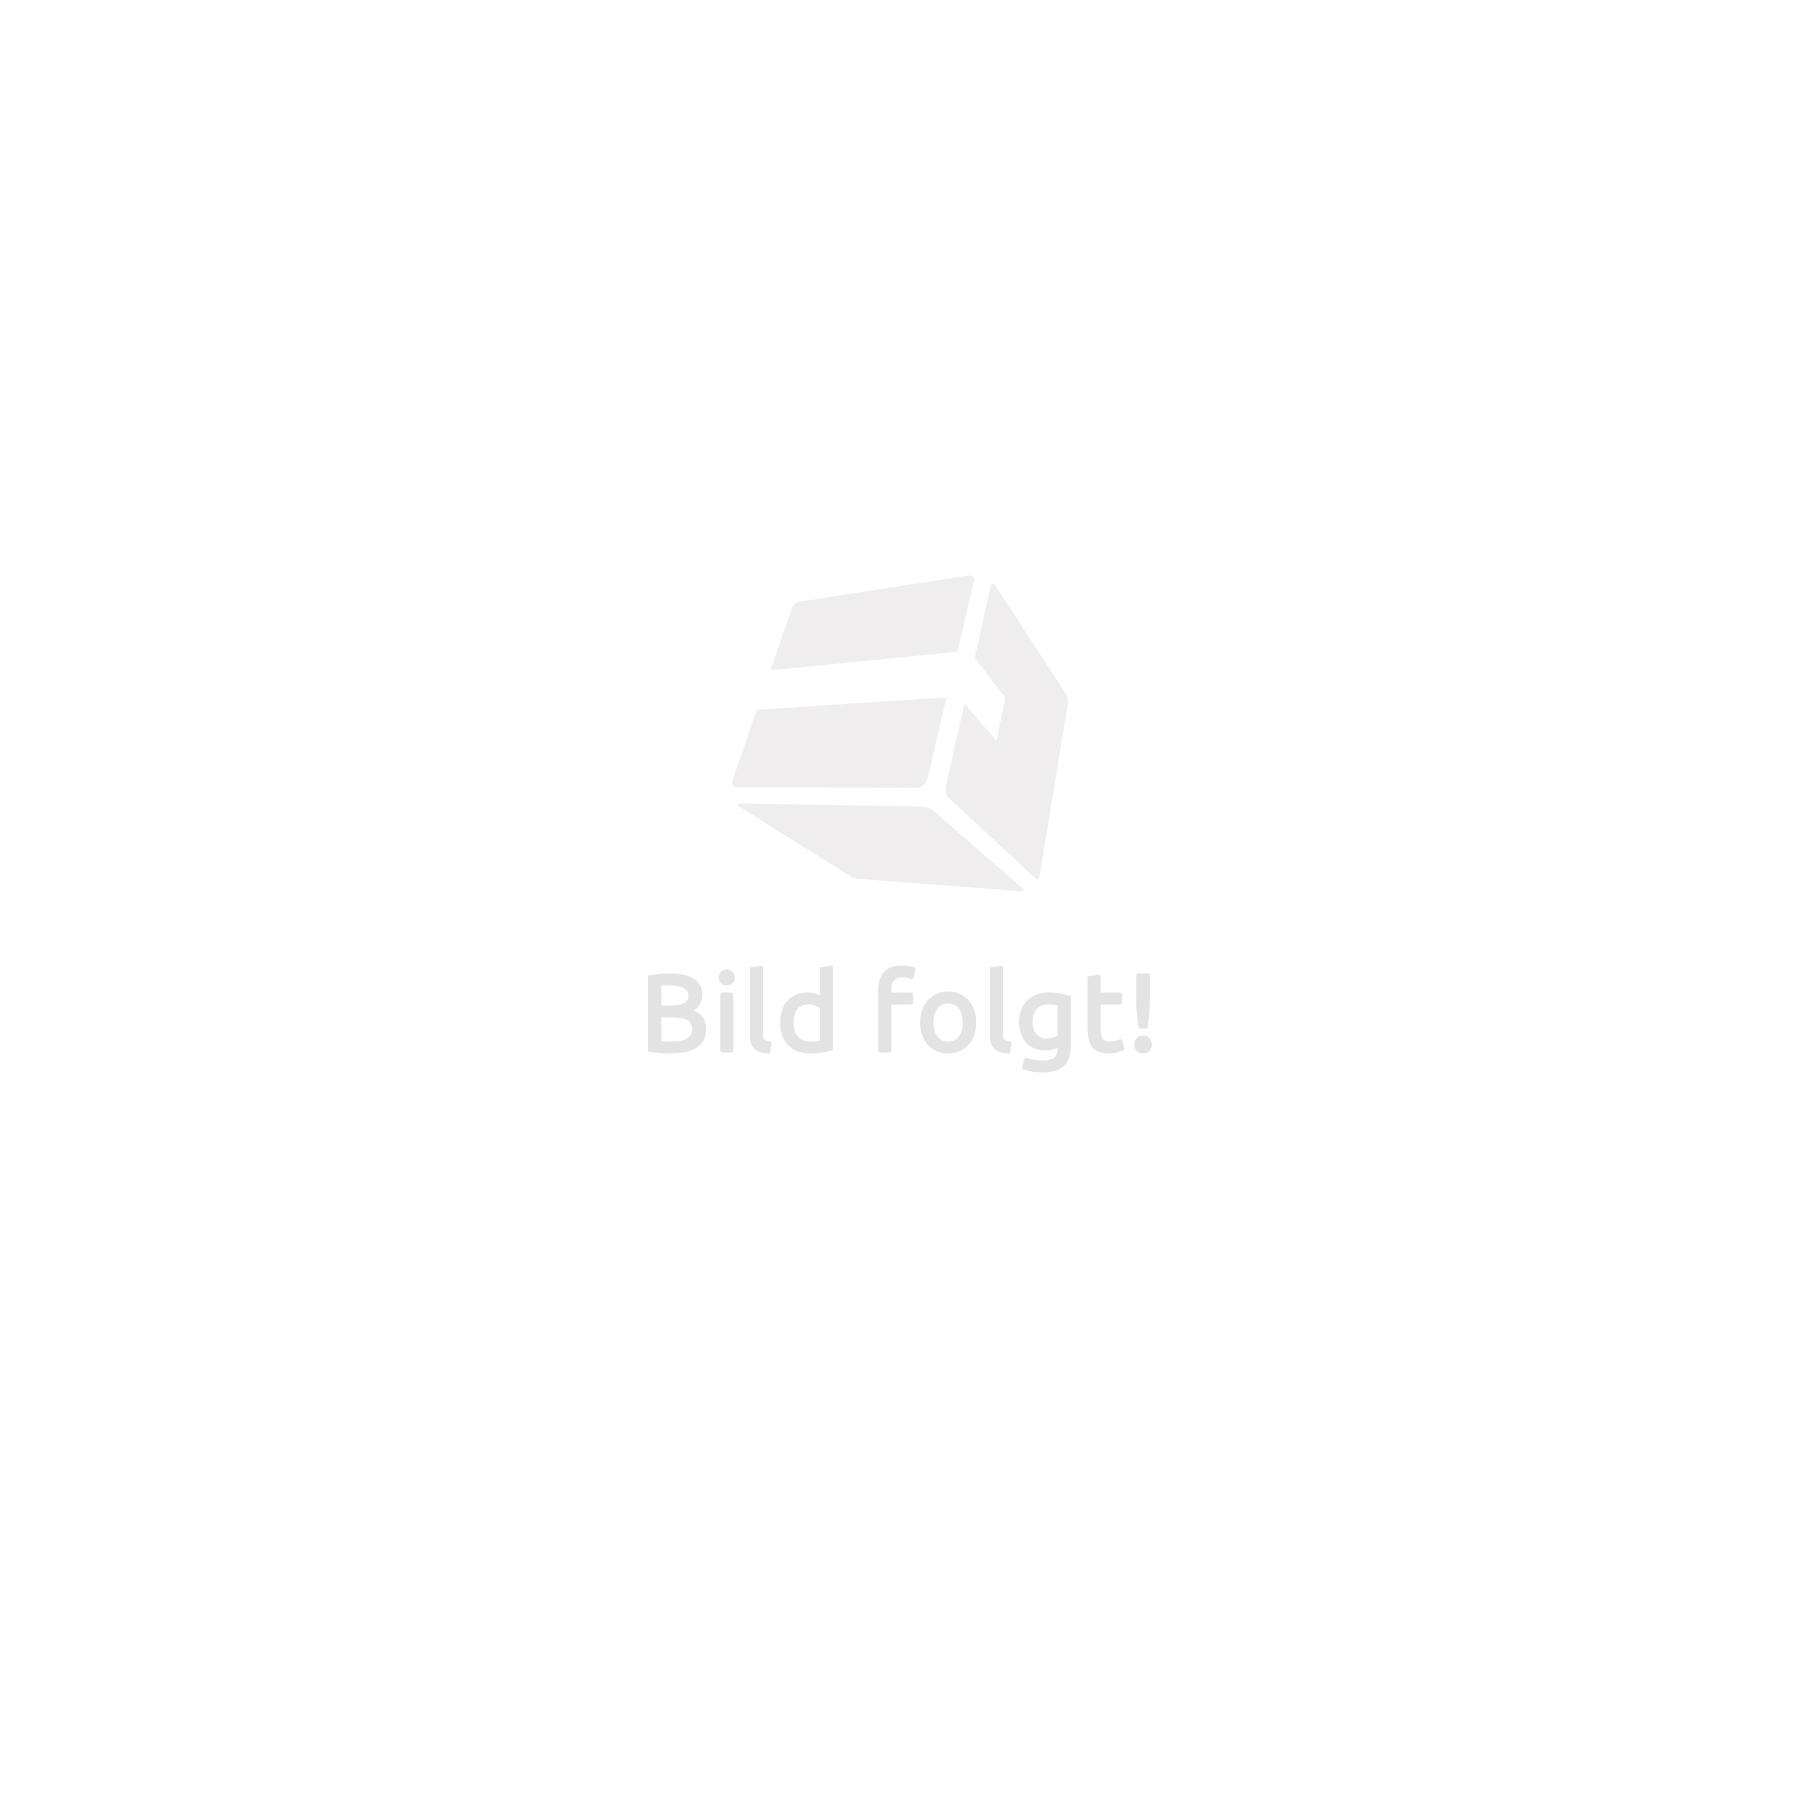 barbecue grill portable charcoal garden outdoor patio bbq trolley wheels table ebay. Black Bedroom Furniture Sets. Home Design Ideas